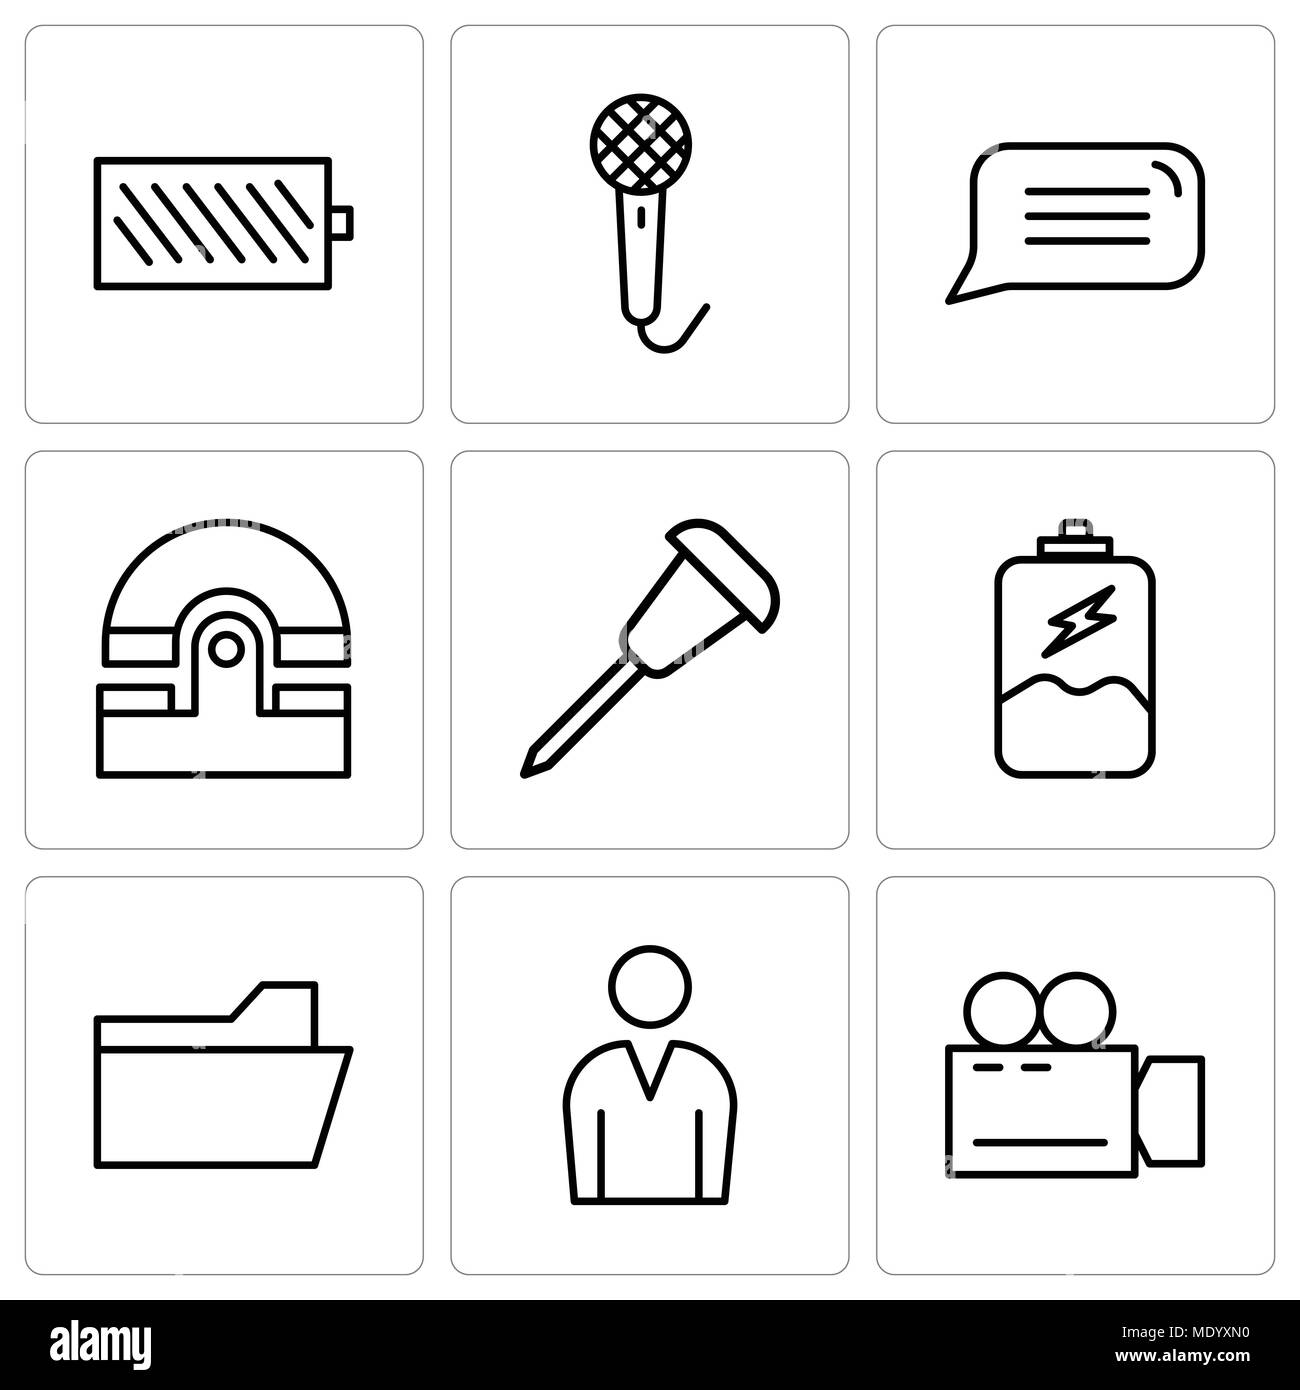 Phone Charging Cut Out Stock Images Pictures Alamy Battery Cell Diagram Editable Powerpoint Template Set Of 9 Simple Icons Such As Video Camera Male Avatar File Folder